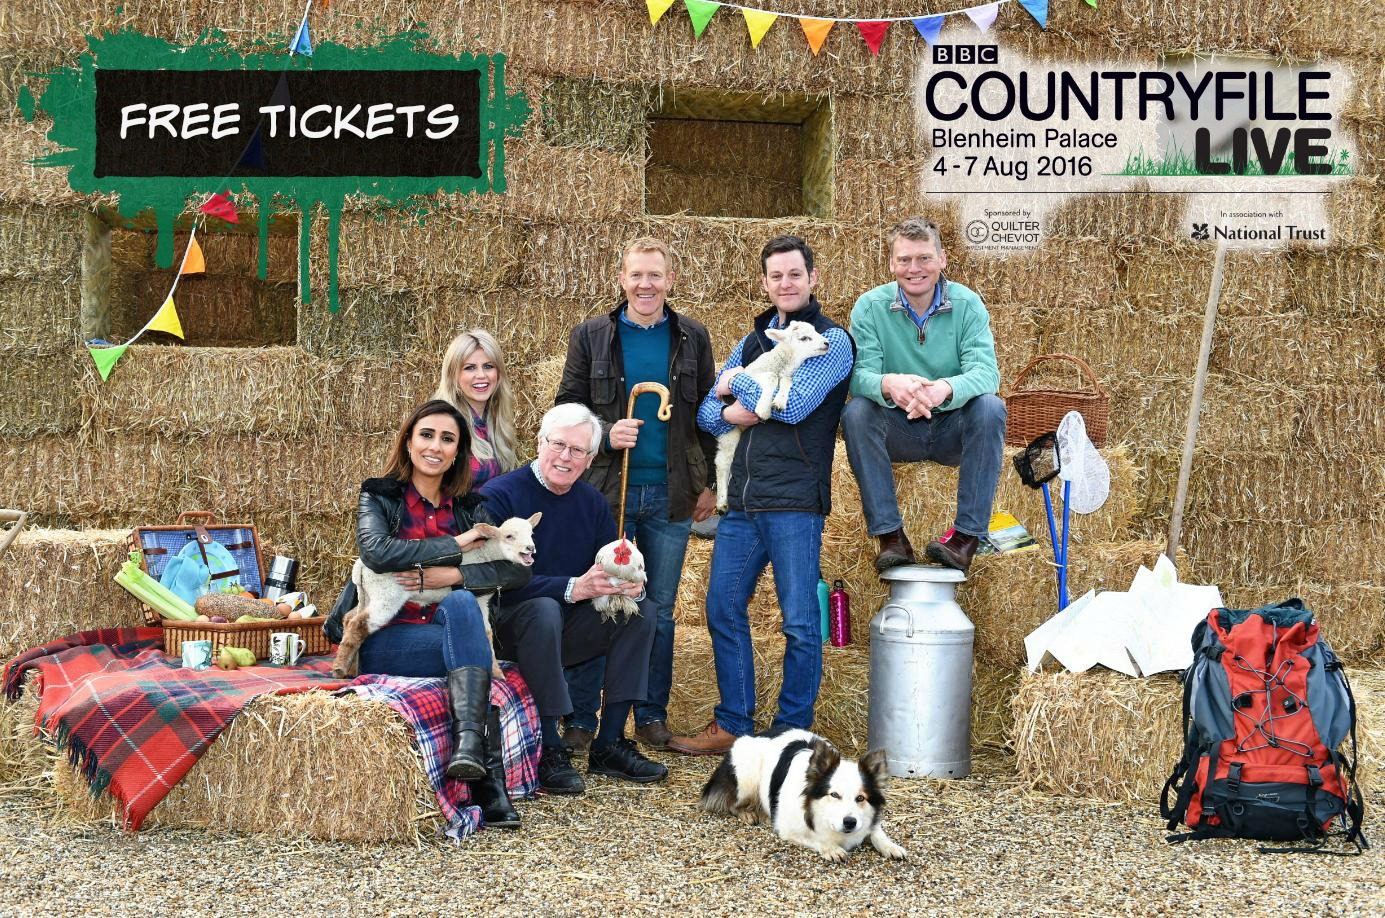 Free Tickets BBC Countryfile Live